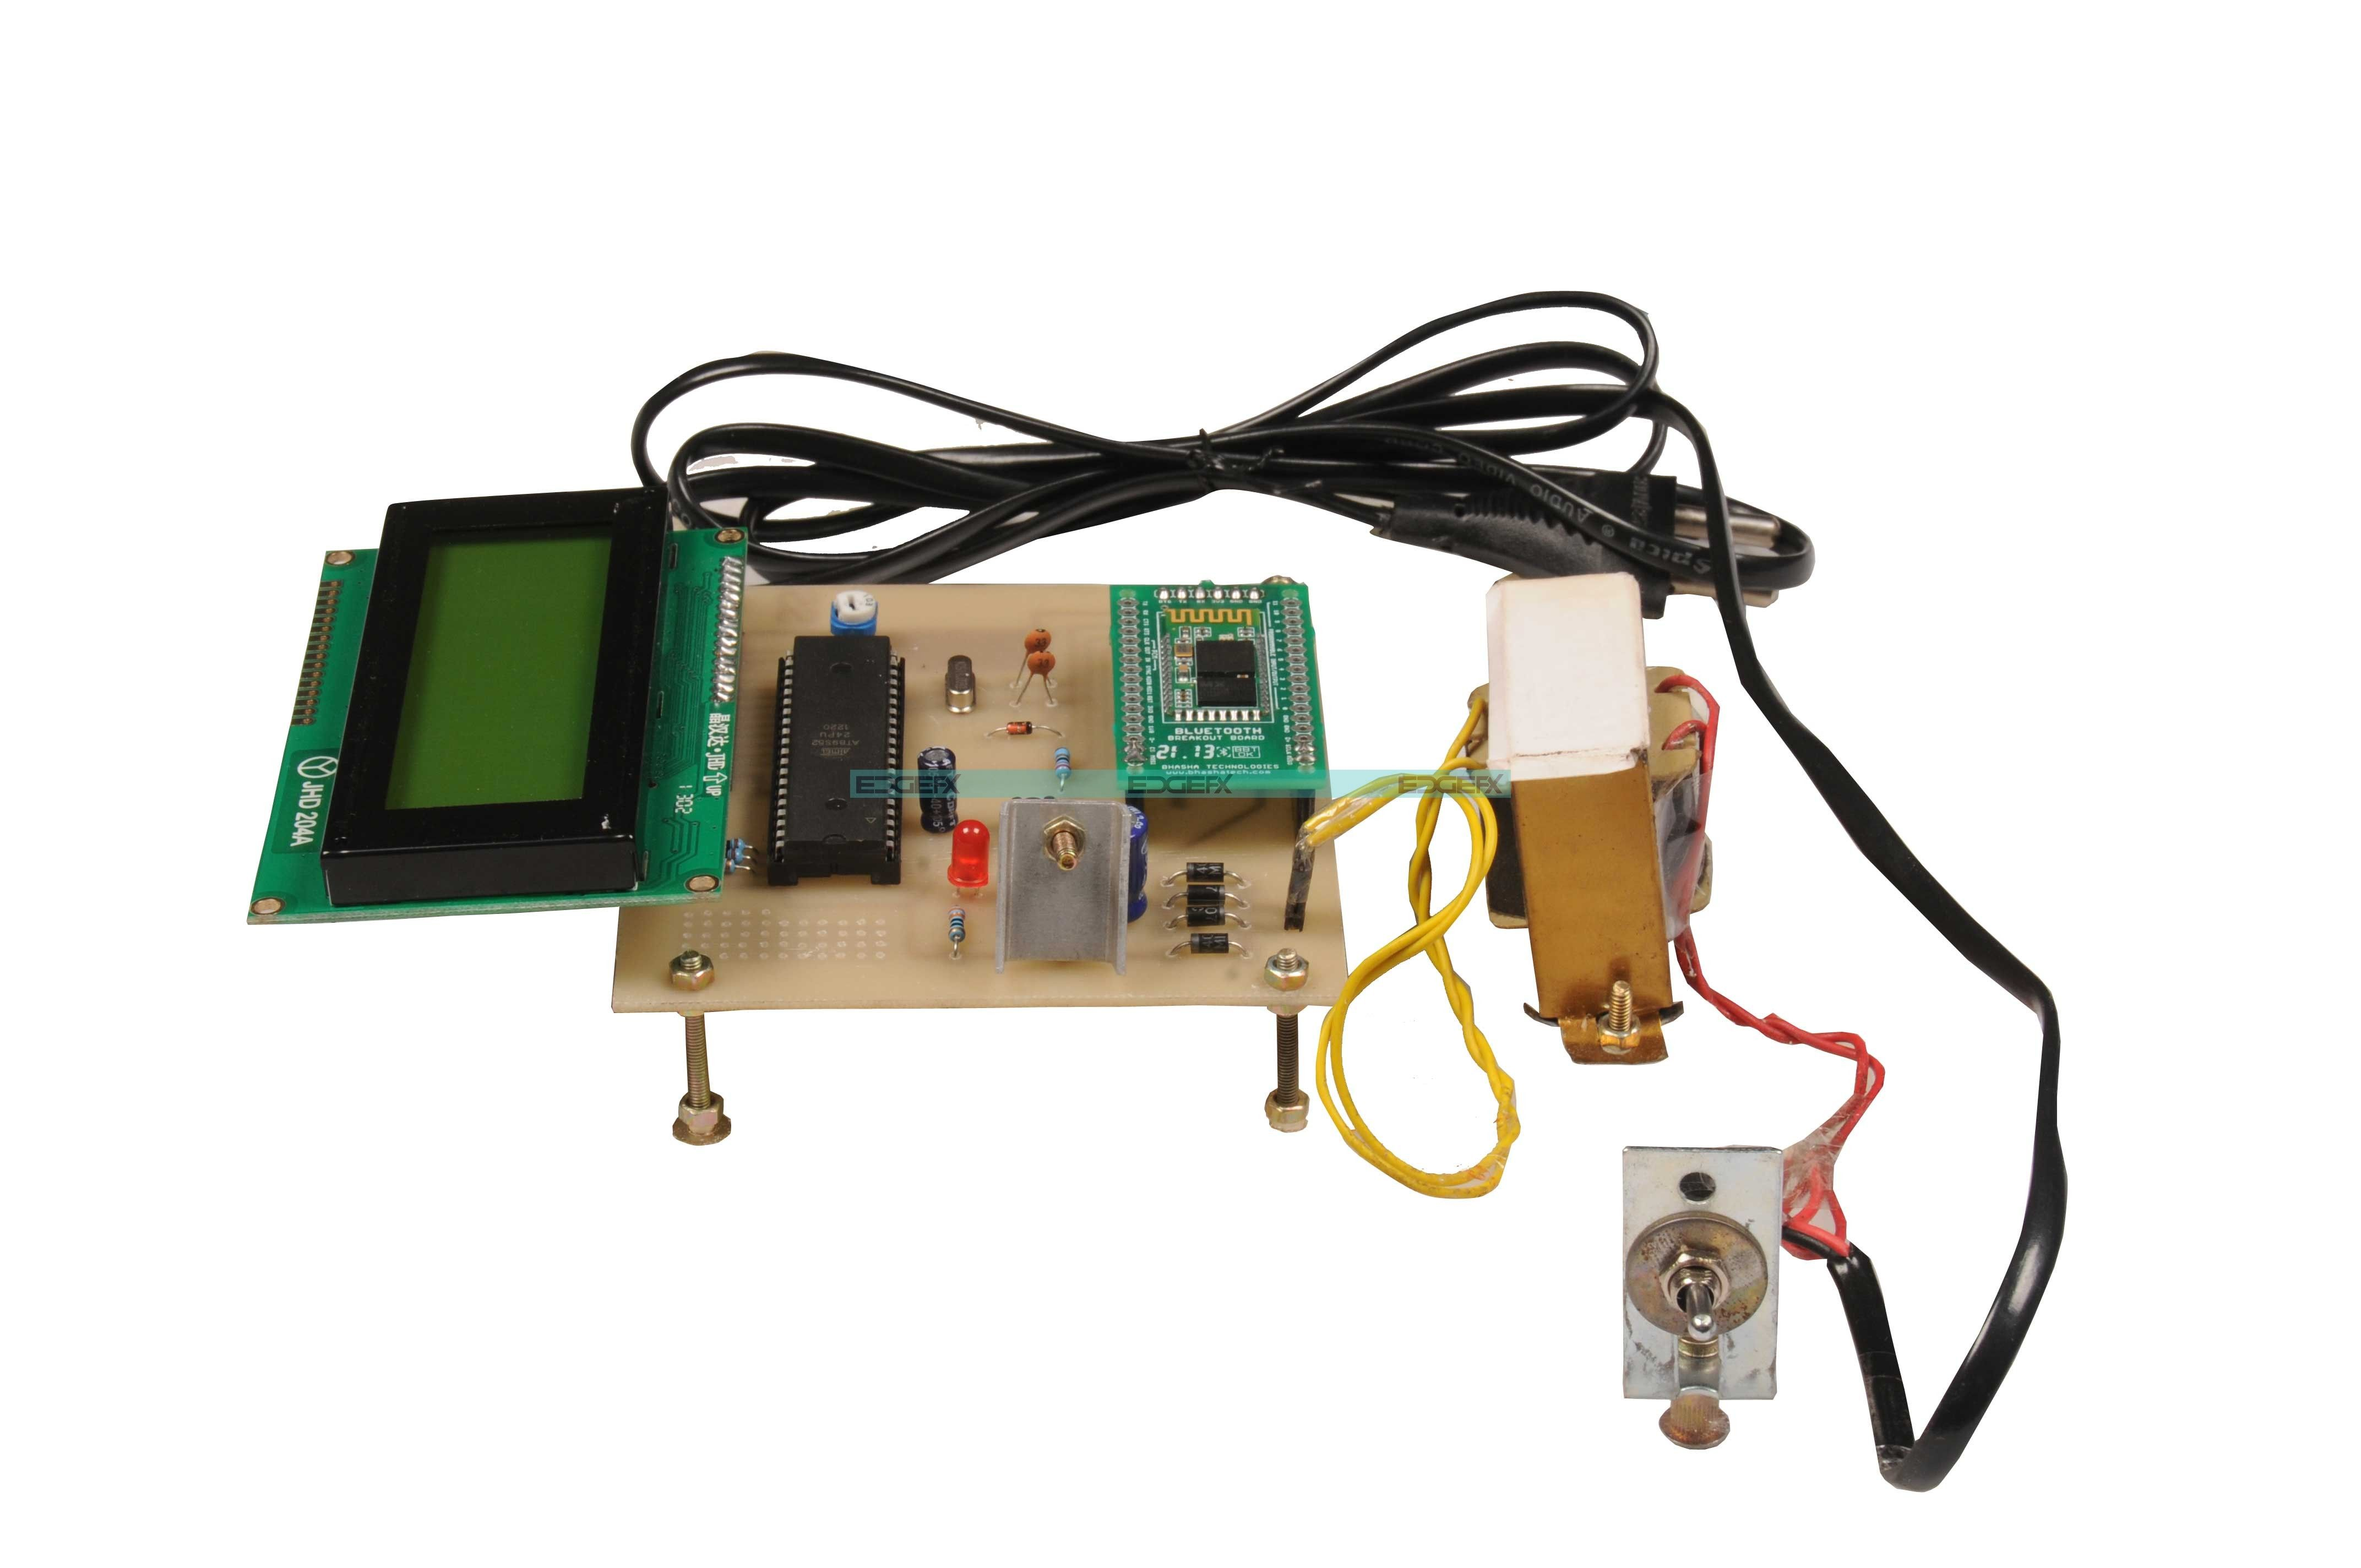 Remotely Controlled Android Based Electronic Notice Board Googl Dtmf Remote Control System Rtpyf5 Ece